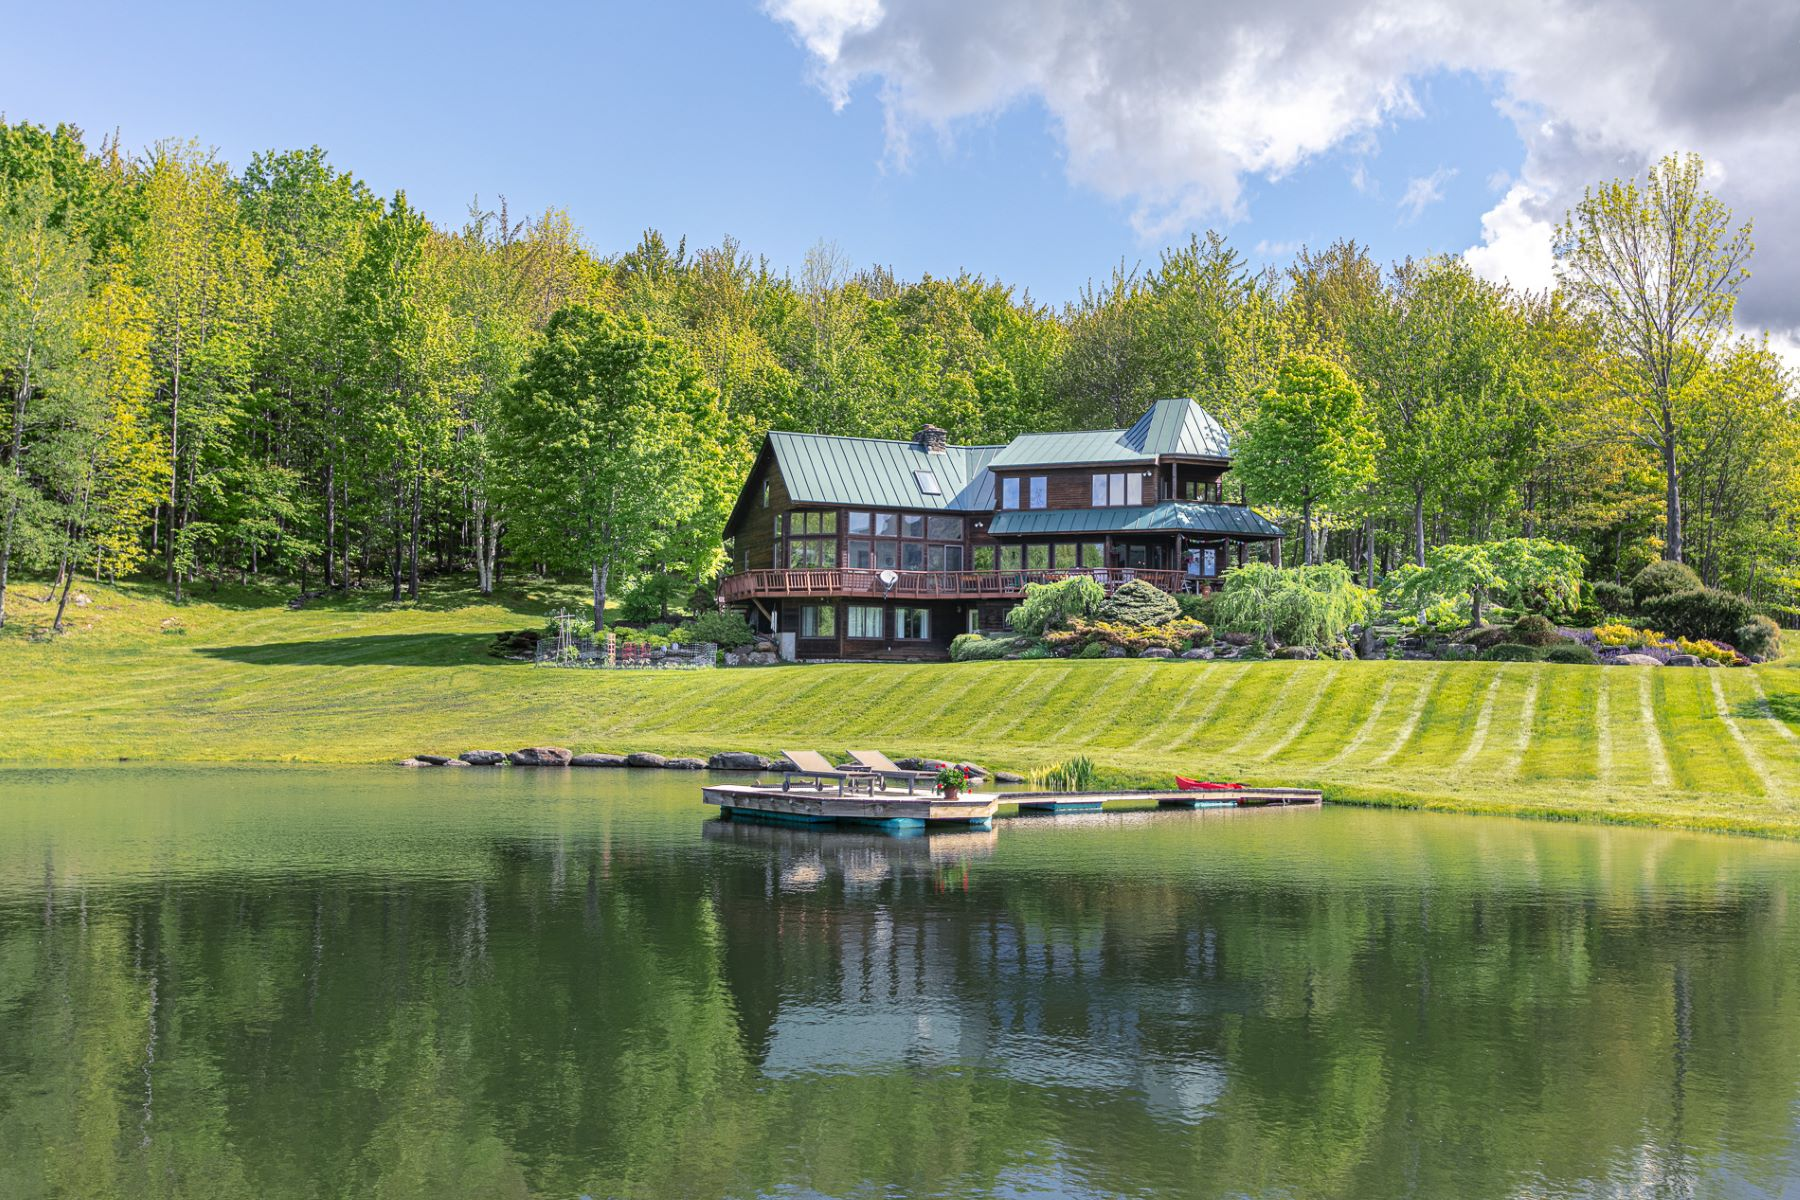 Single Family Homes for Sale at 3924 Stowe Hollow Road, Stowe 3924 Stowe Hollow Rd Stowe, Vermont 05672 United States